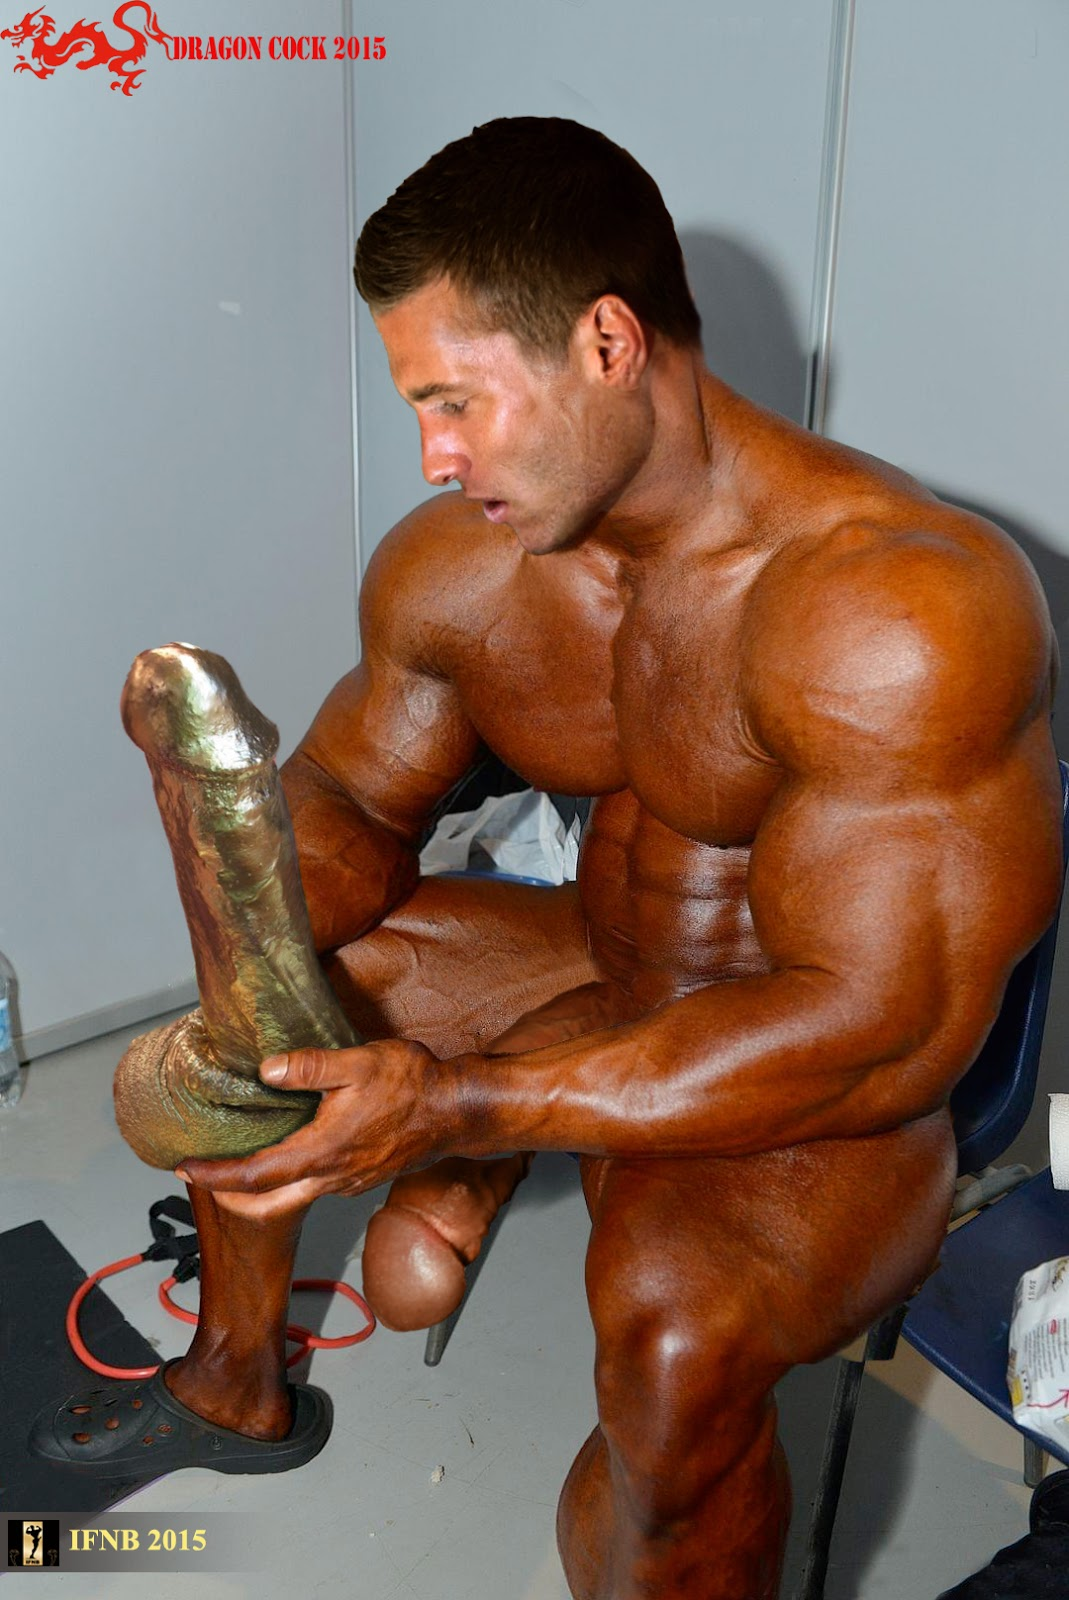 The IFNB Report: Massive Muscle and Cock Blog: DRAGONCOCK ...